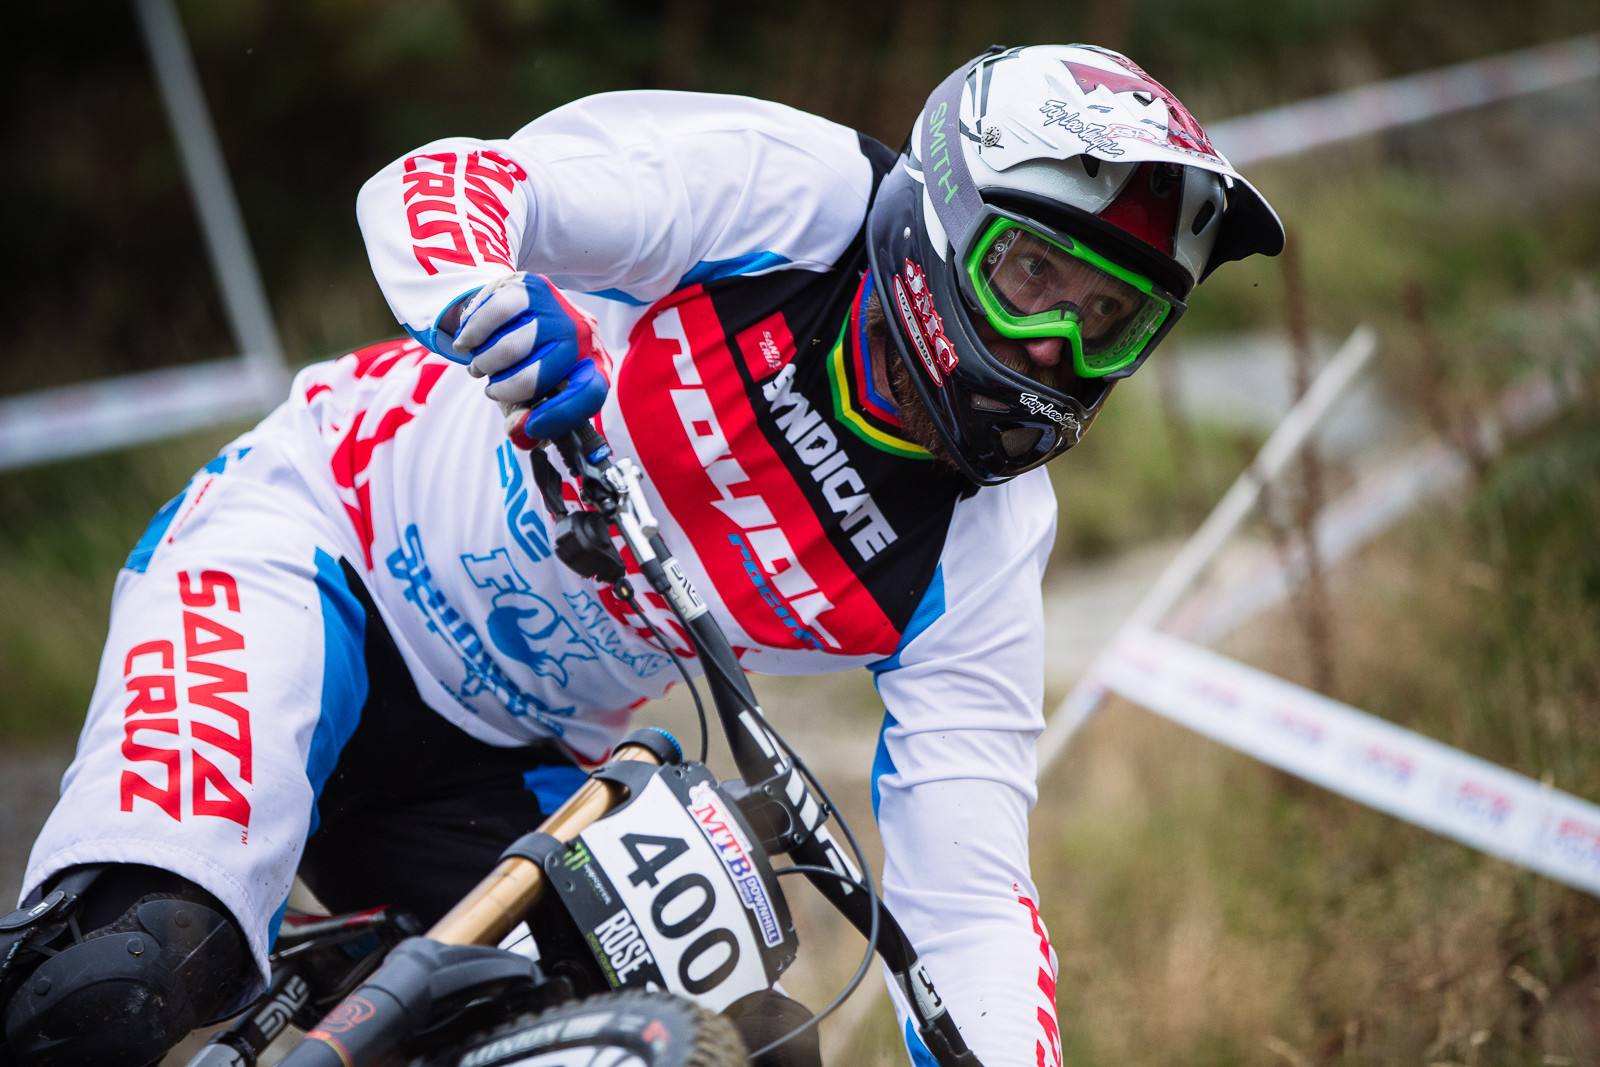 Steve Peat, 2015 British Downhill Series Finals, Antur Stiniog - 2015 British Downhill Series Finals - Mountain Biking Pictures - Vital MTB